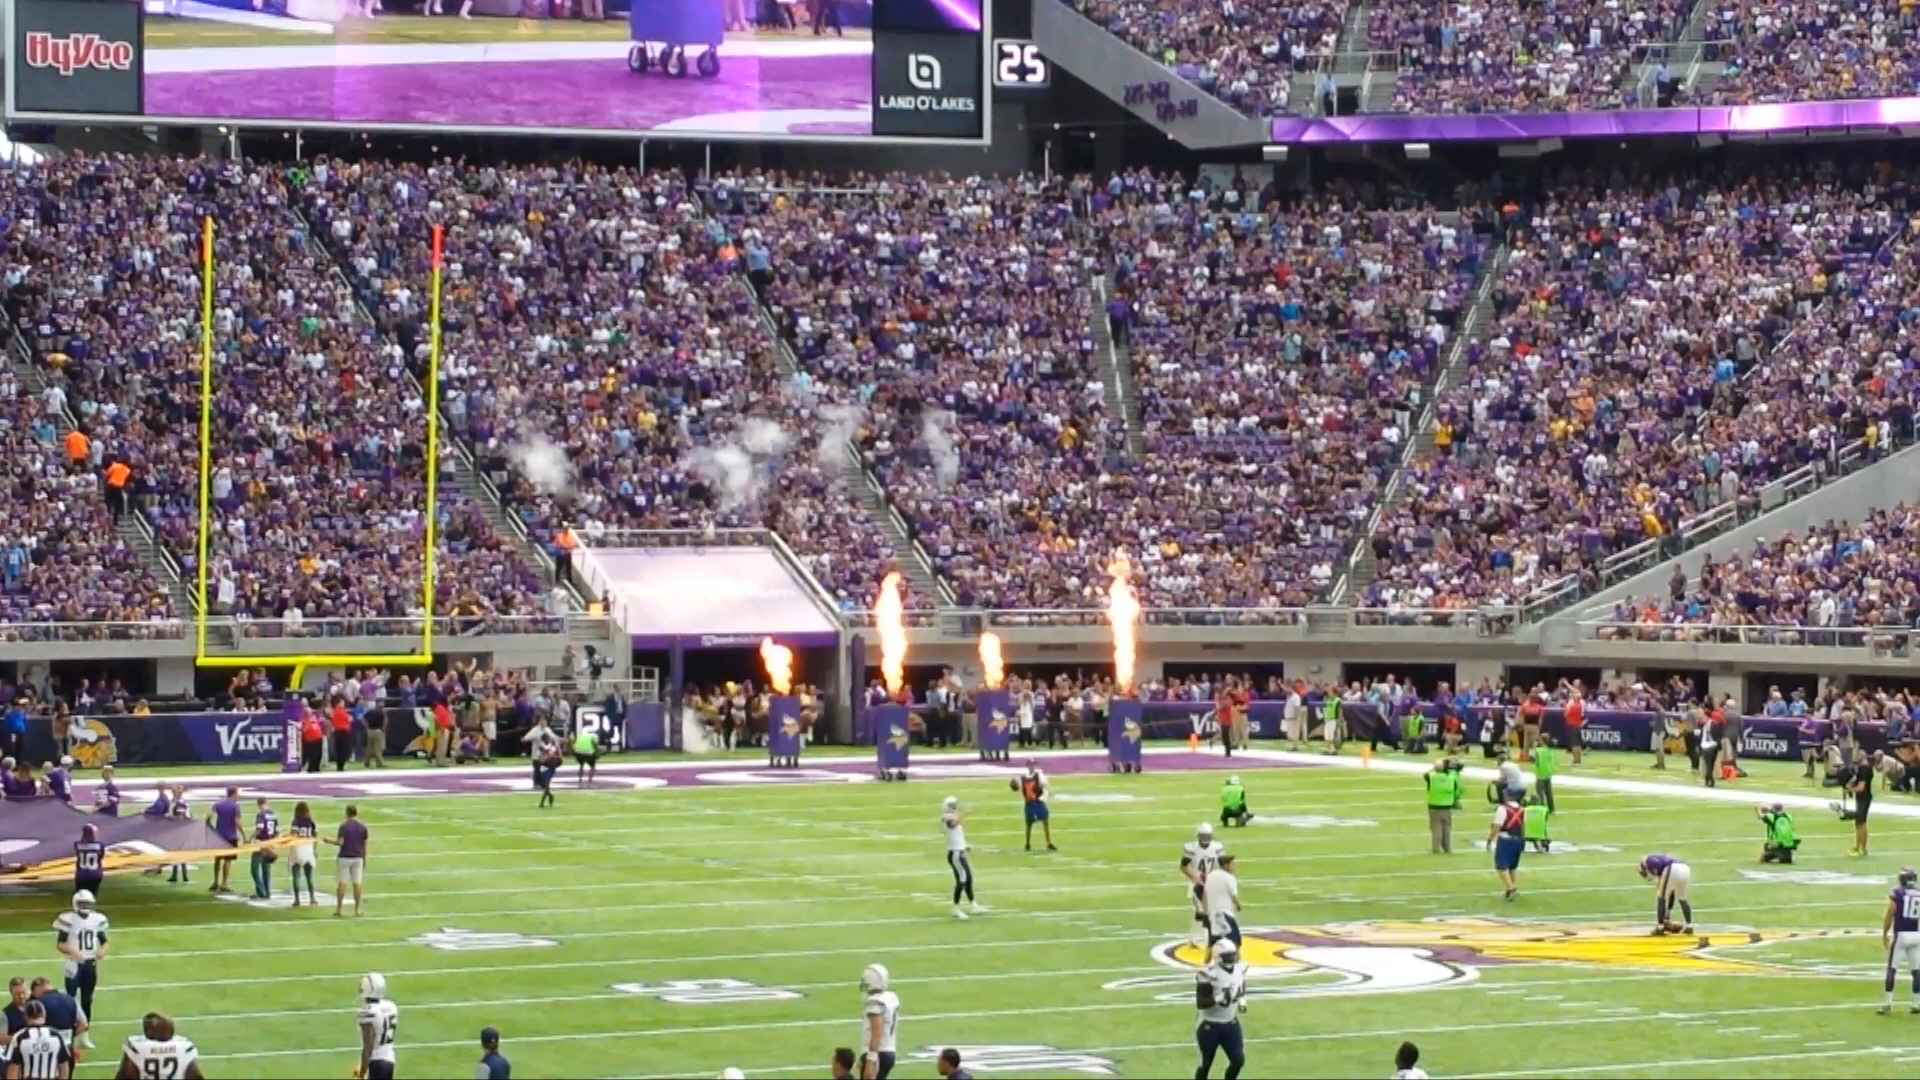 Minnesota Vikings U.S. Bank Stadium First Game - Fire